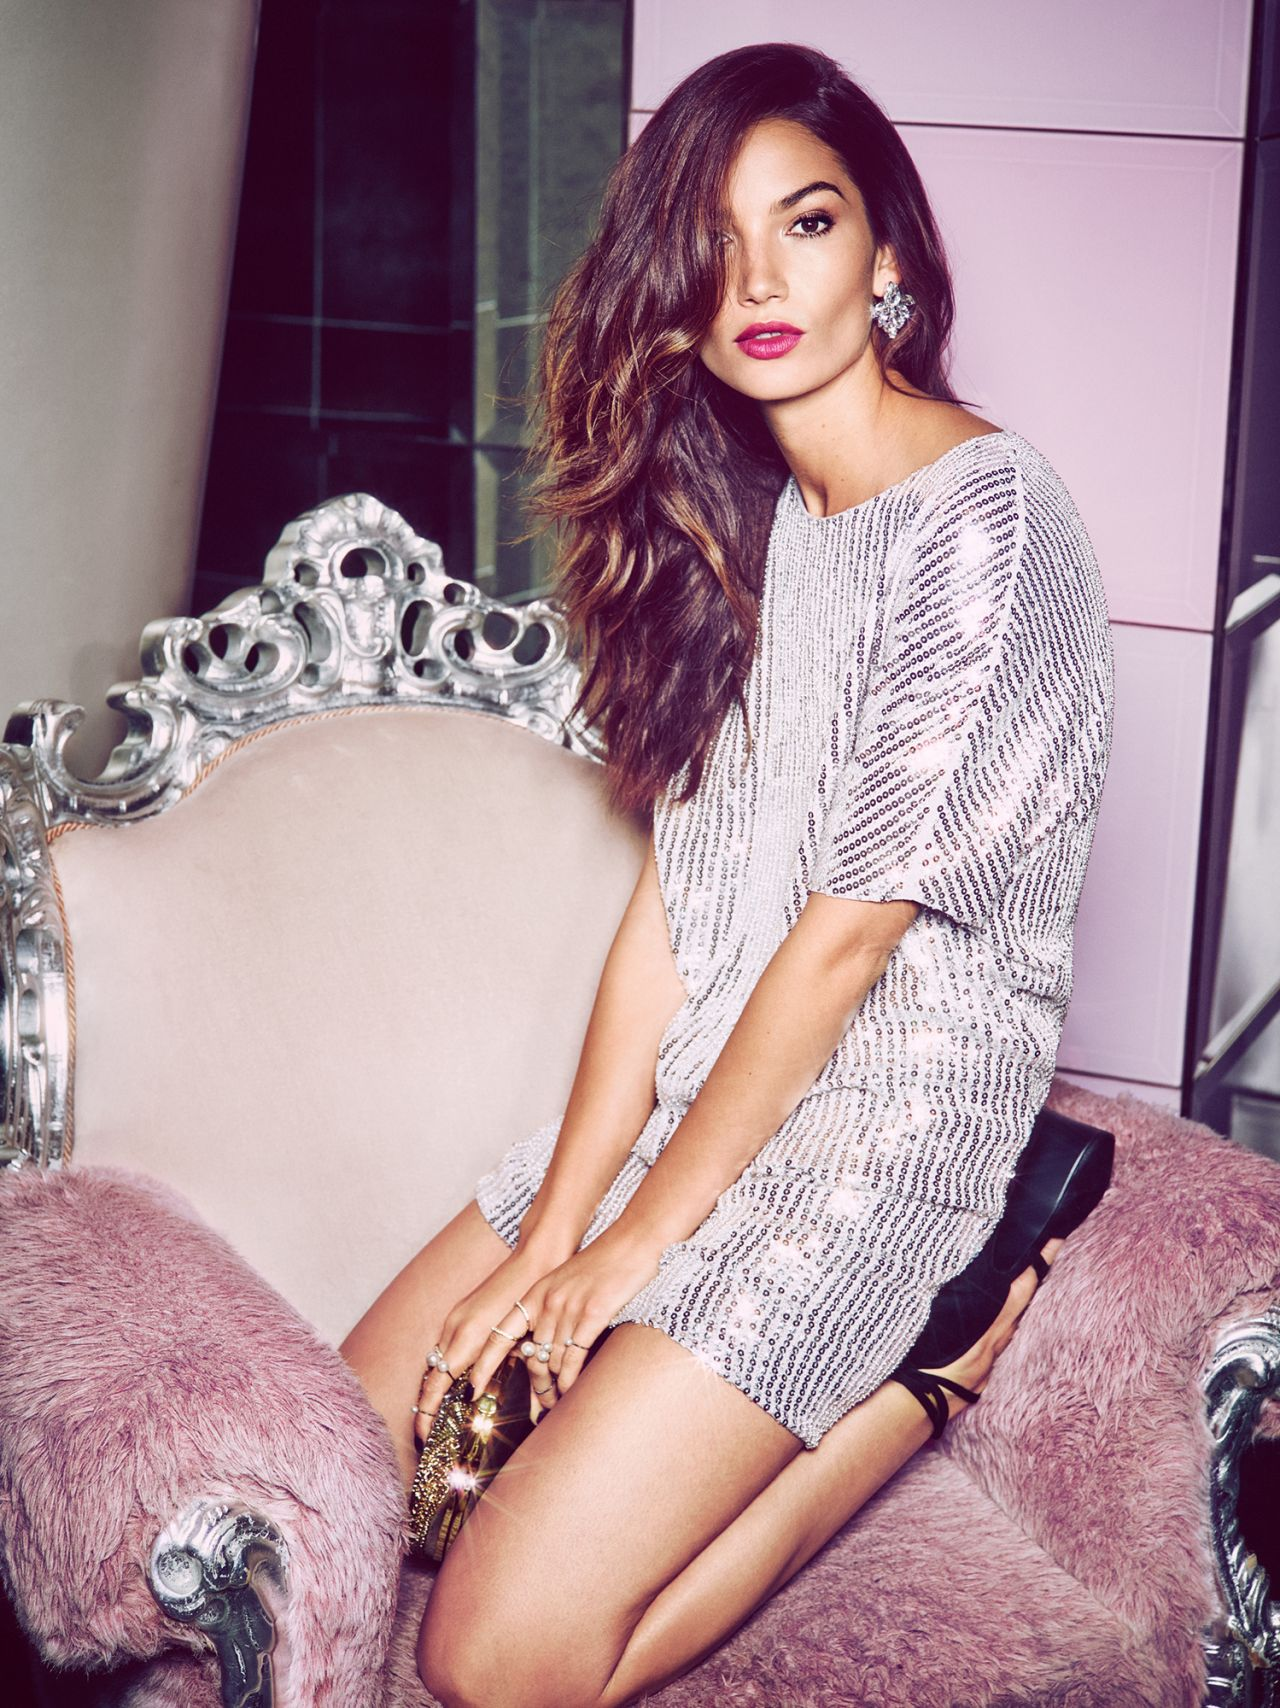 Lily Aldridge - Photoshoot for Nelly.com (2014)